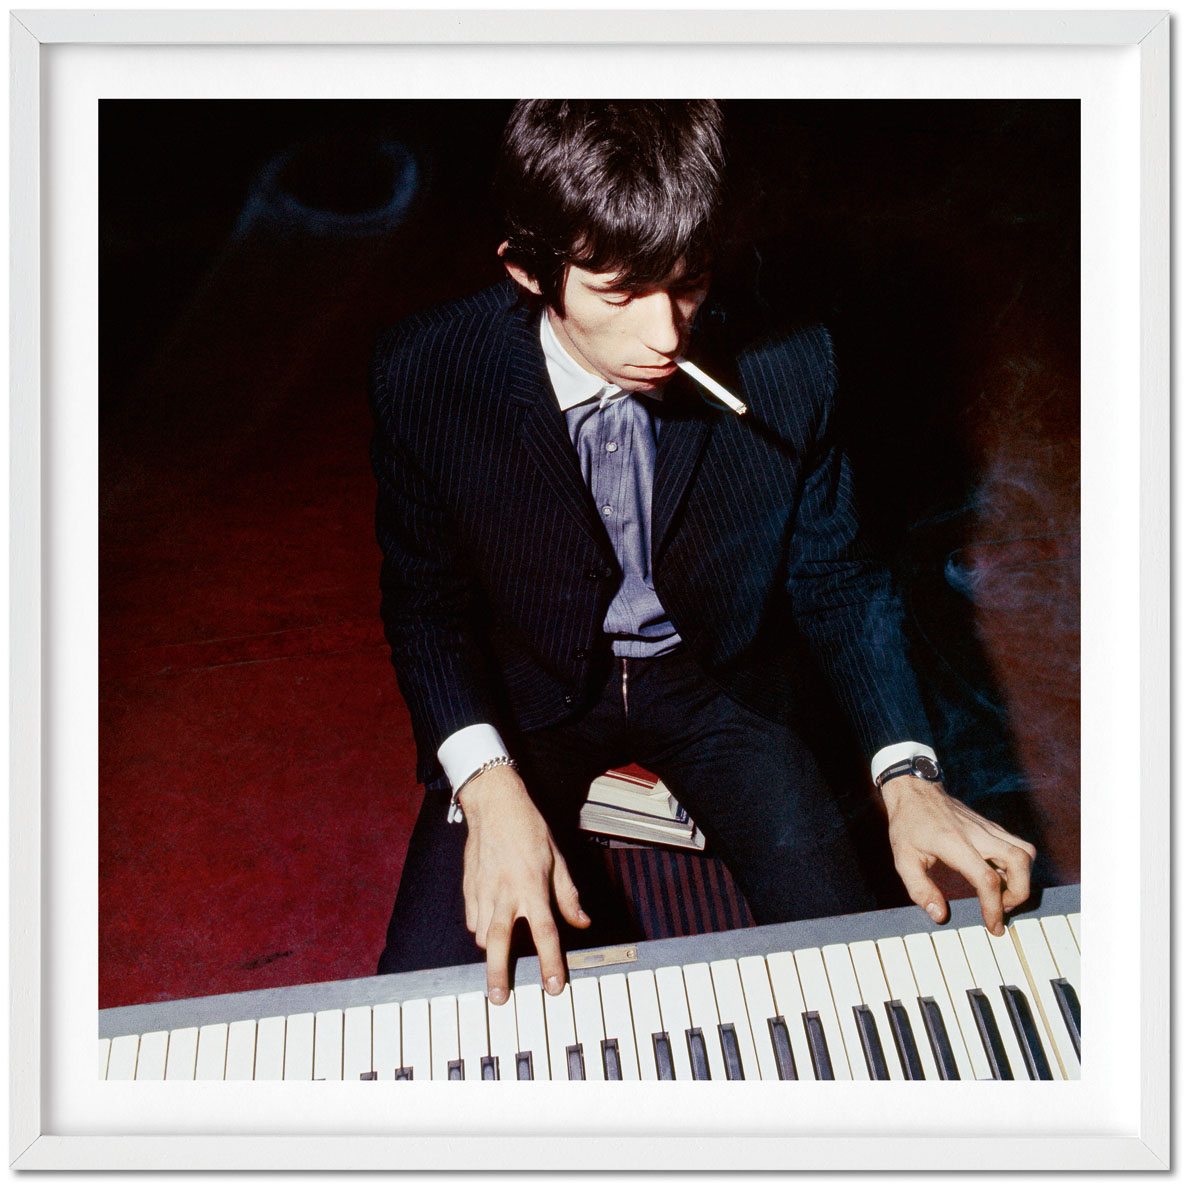 Bent Rej Keith playing the piano (1965), signed by photographer Bent Rej, Archival pigment print on Hahnemühle Baryta paper